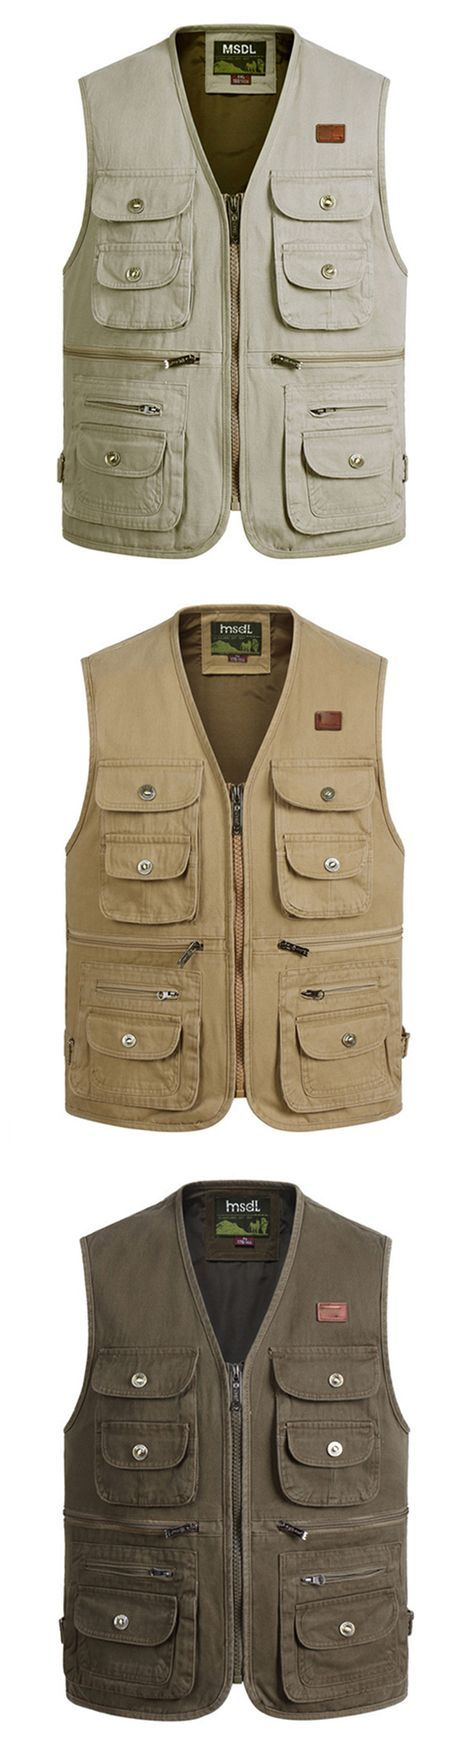 US$26.97 (47% OFF) Pure Cotton Multi Pockets Vest / Waistcoats for Men: Outdoor / Sport / Fishing / Photographic